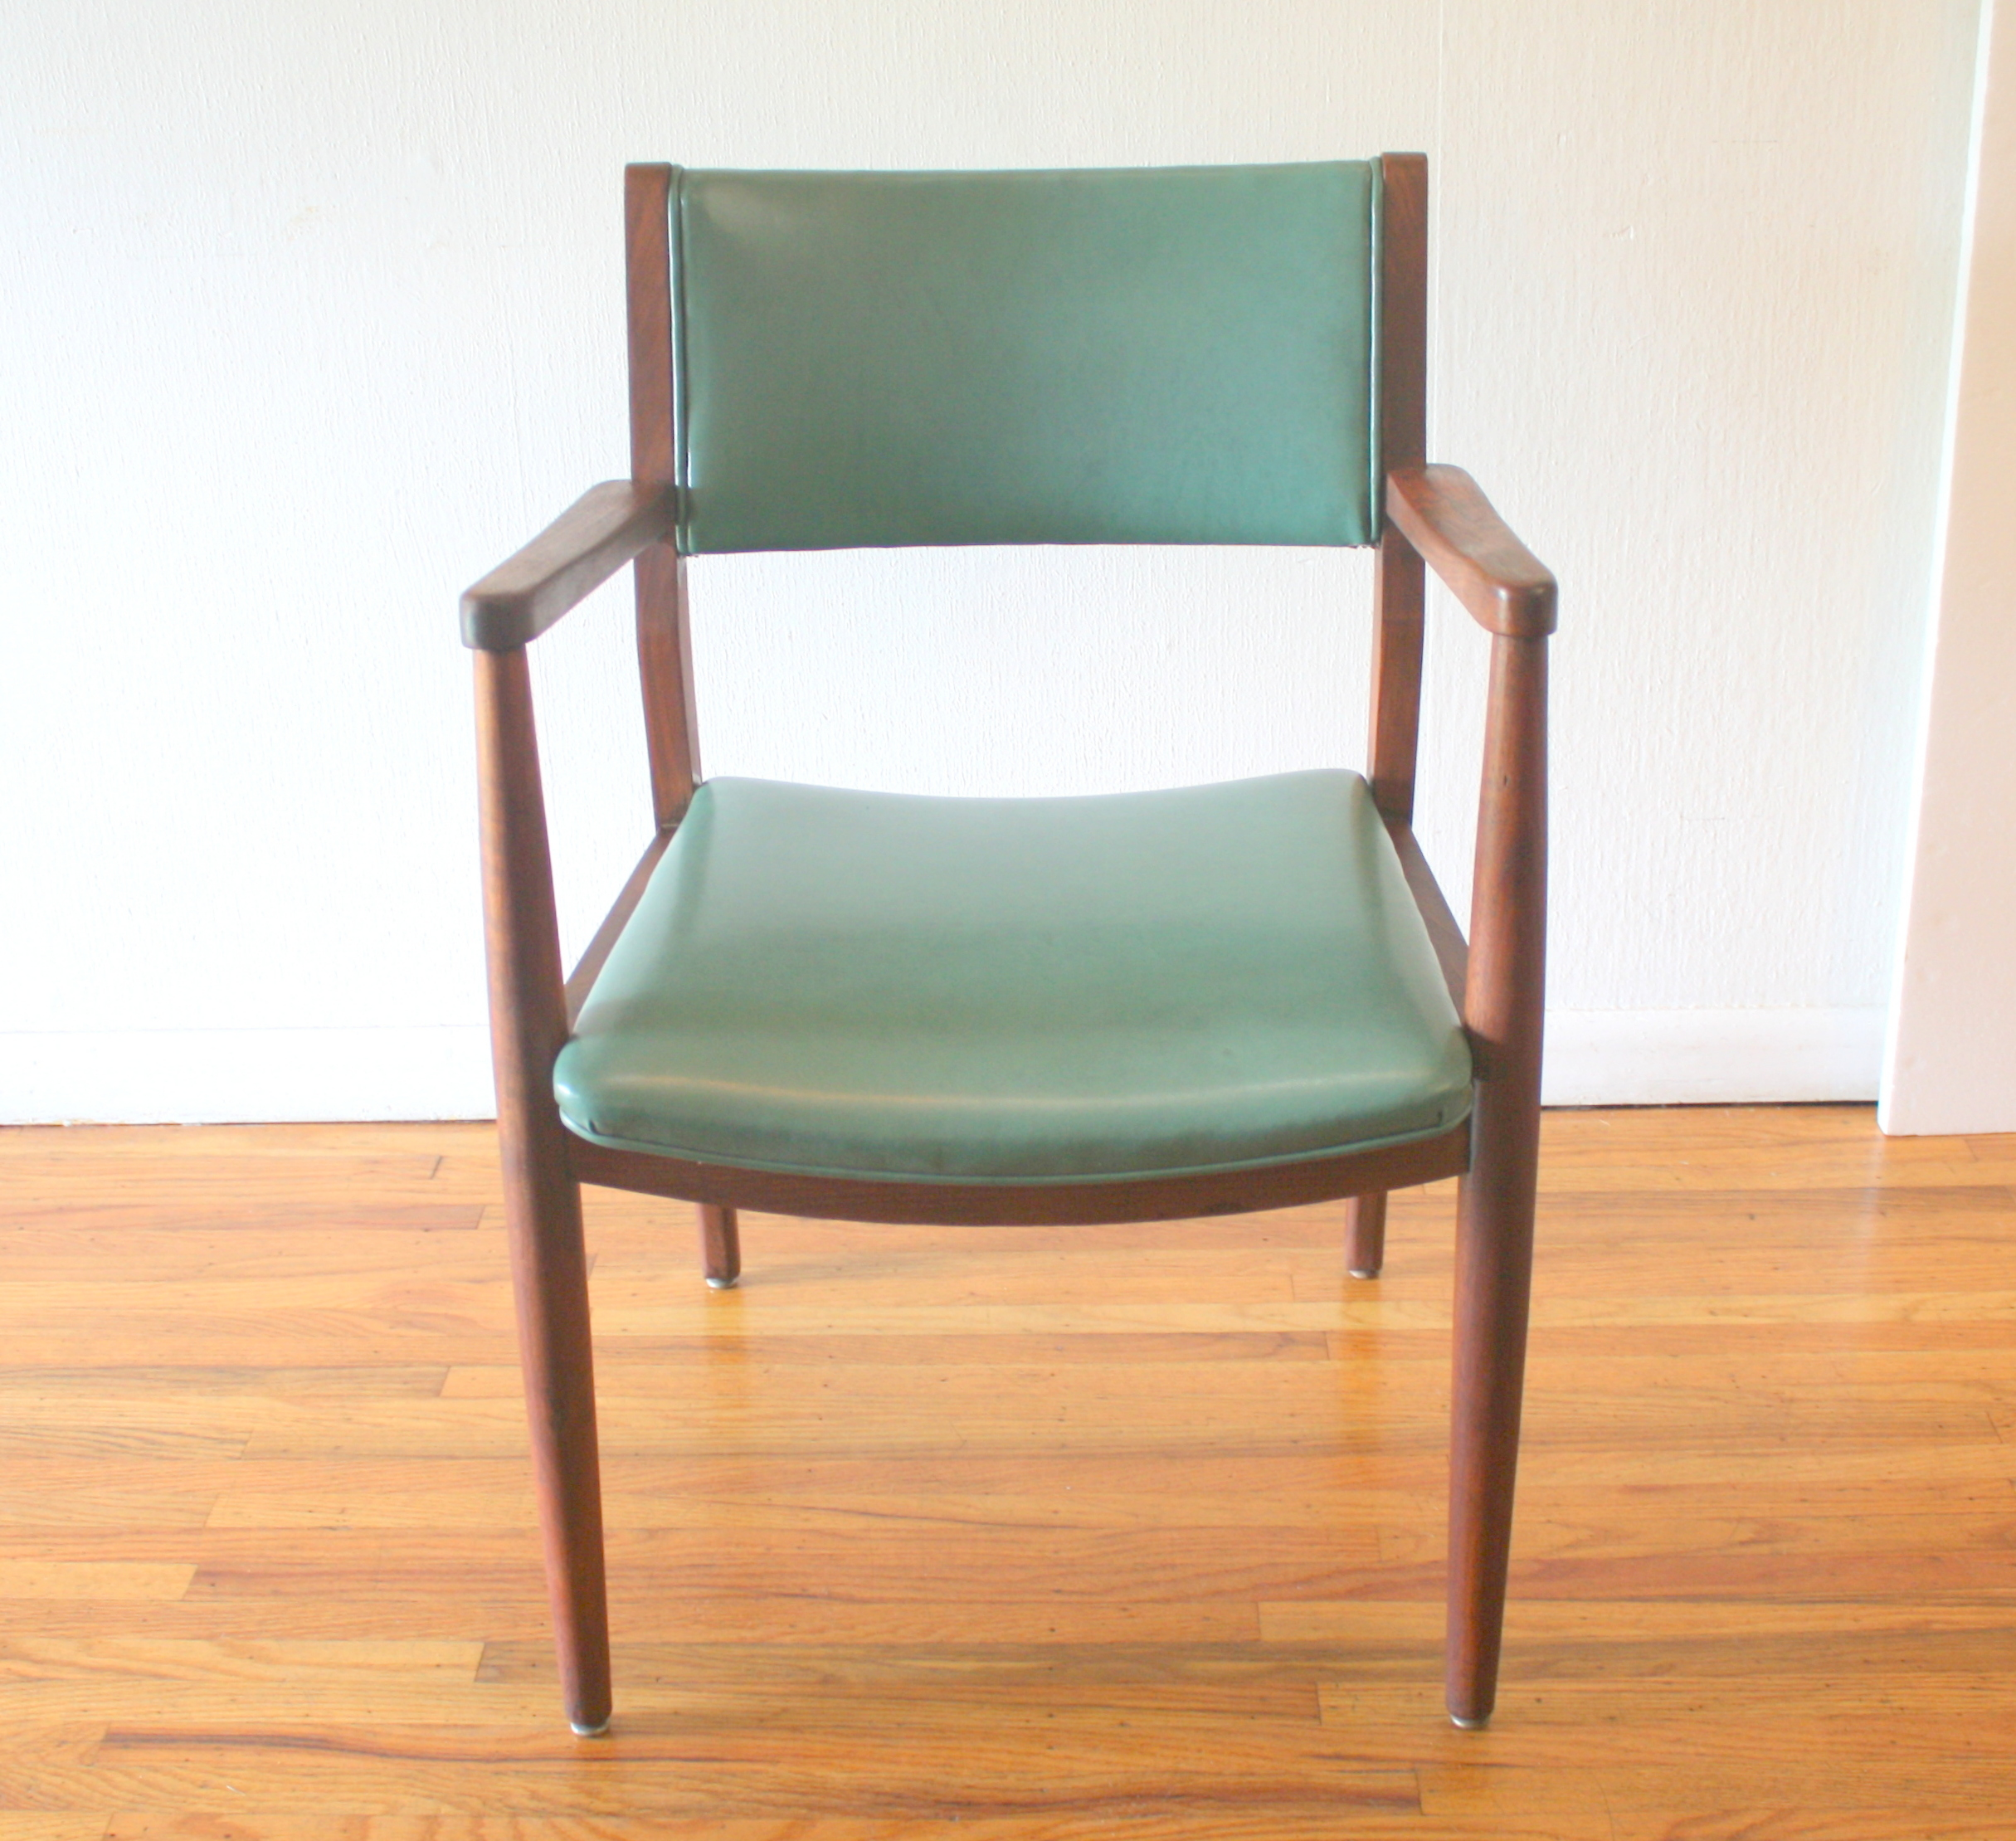 turquoise lounge chair antique wicker chairs uk picked vintage mcm arm 1